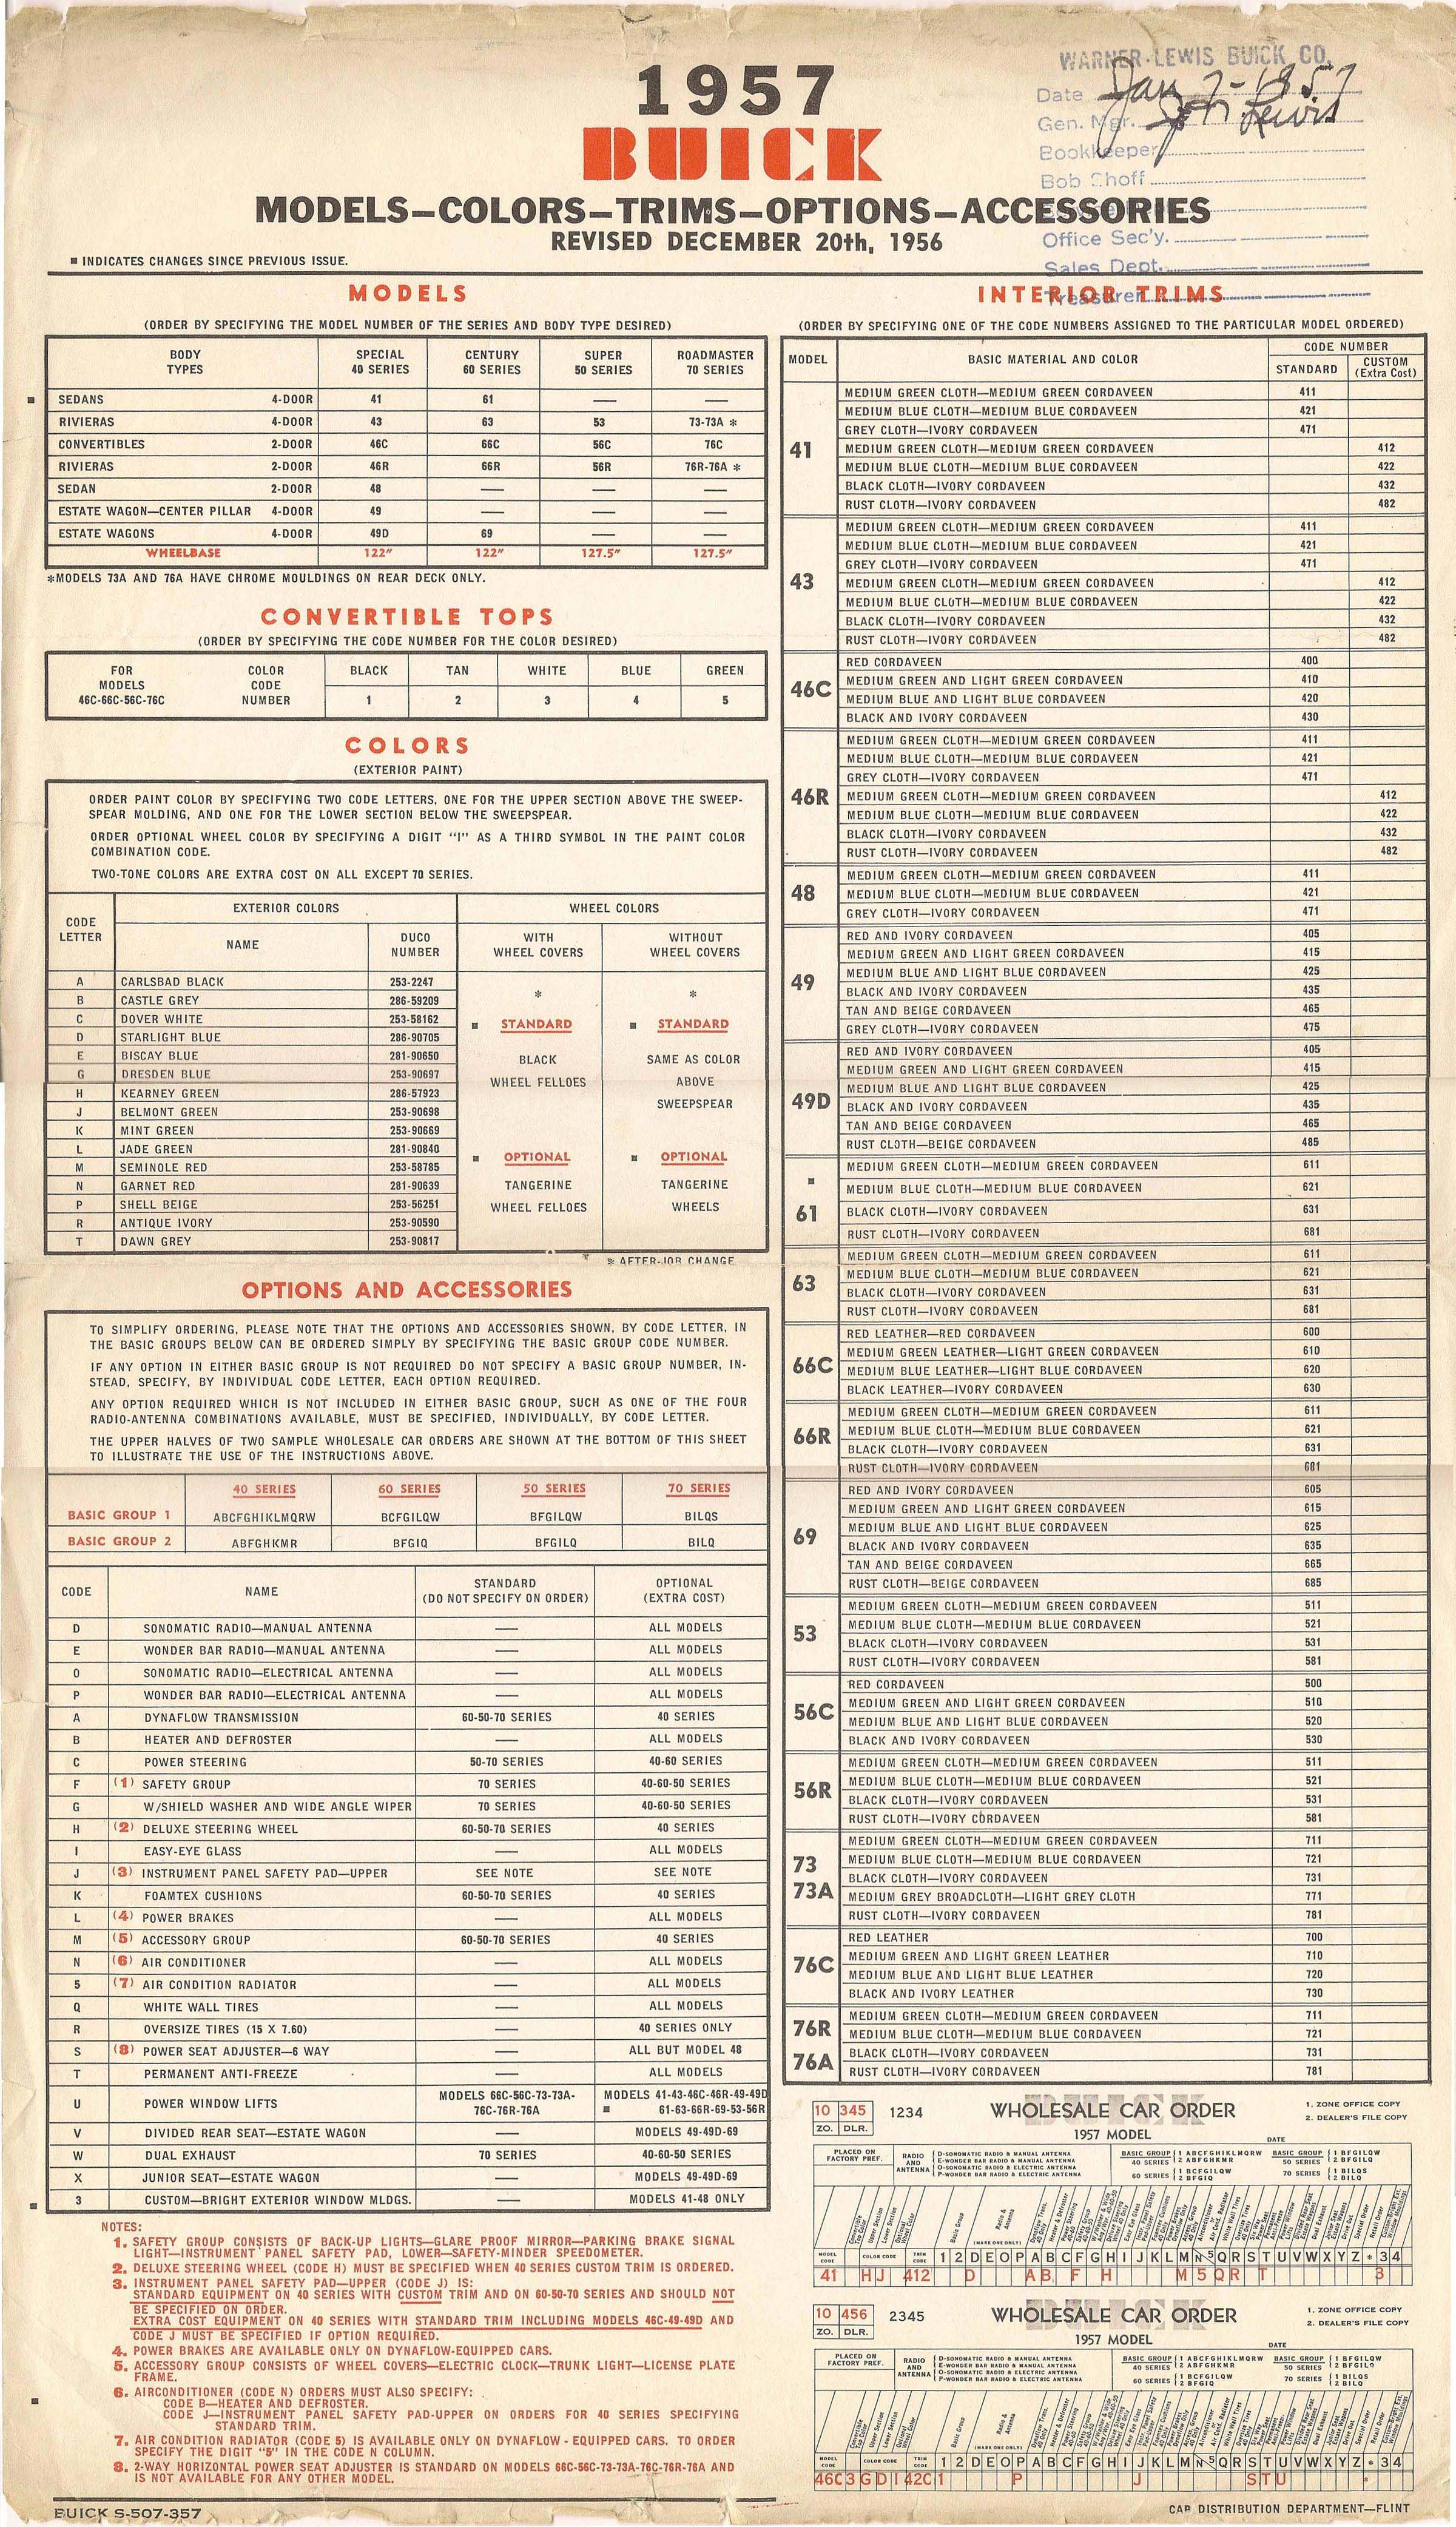 1957 Buick Order Form